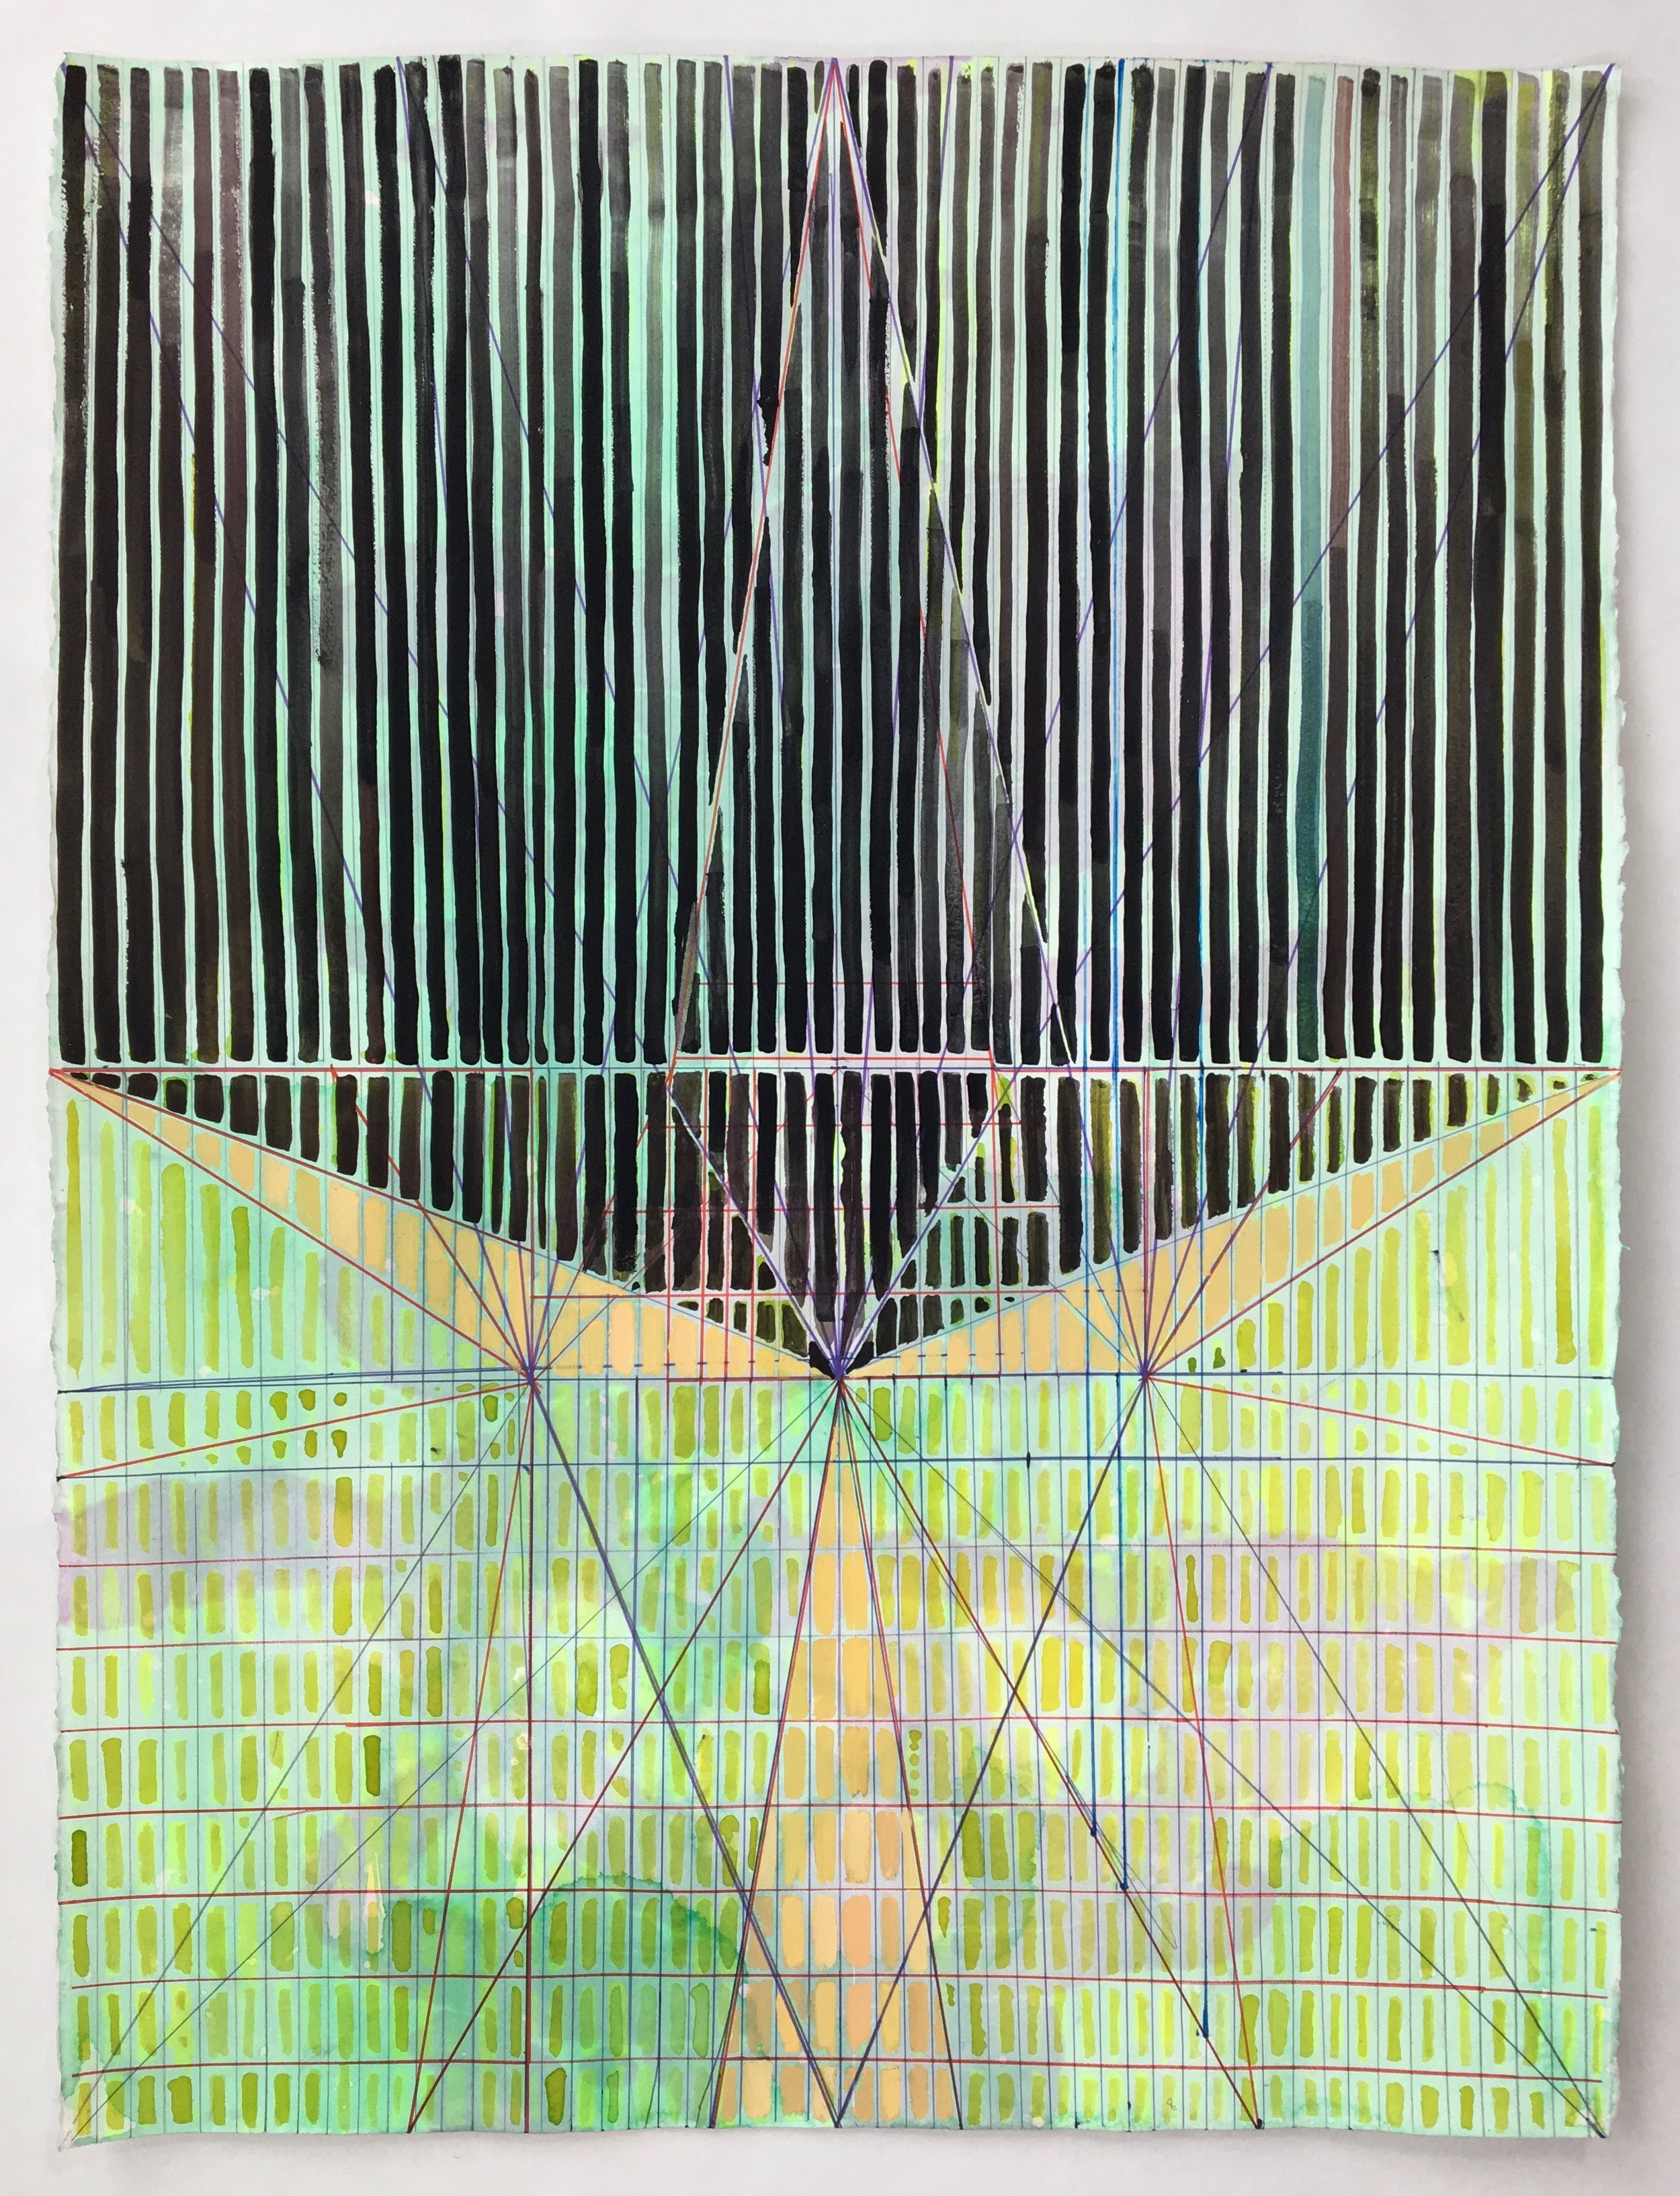 Joe Lloyd, Black Pattern, 2017, watercolor, acrylic on paper, 30 x 22 inches